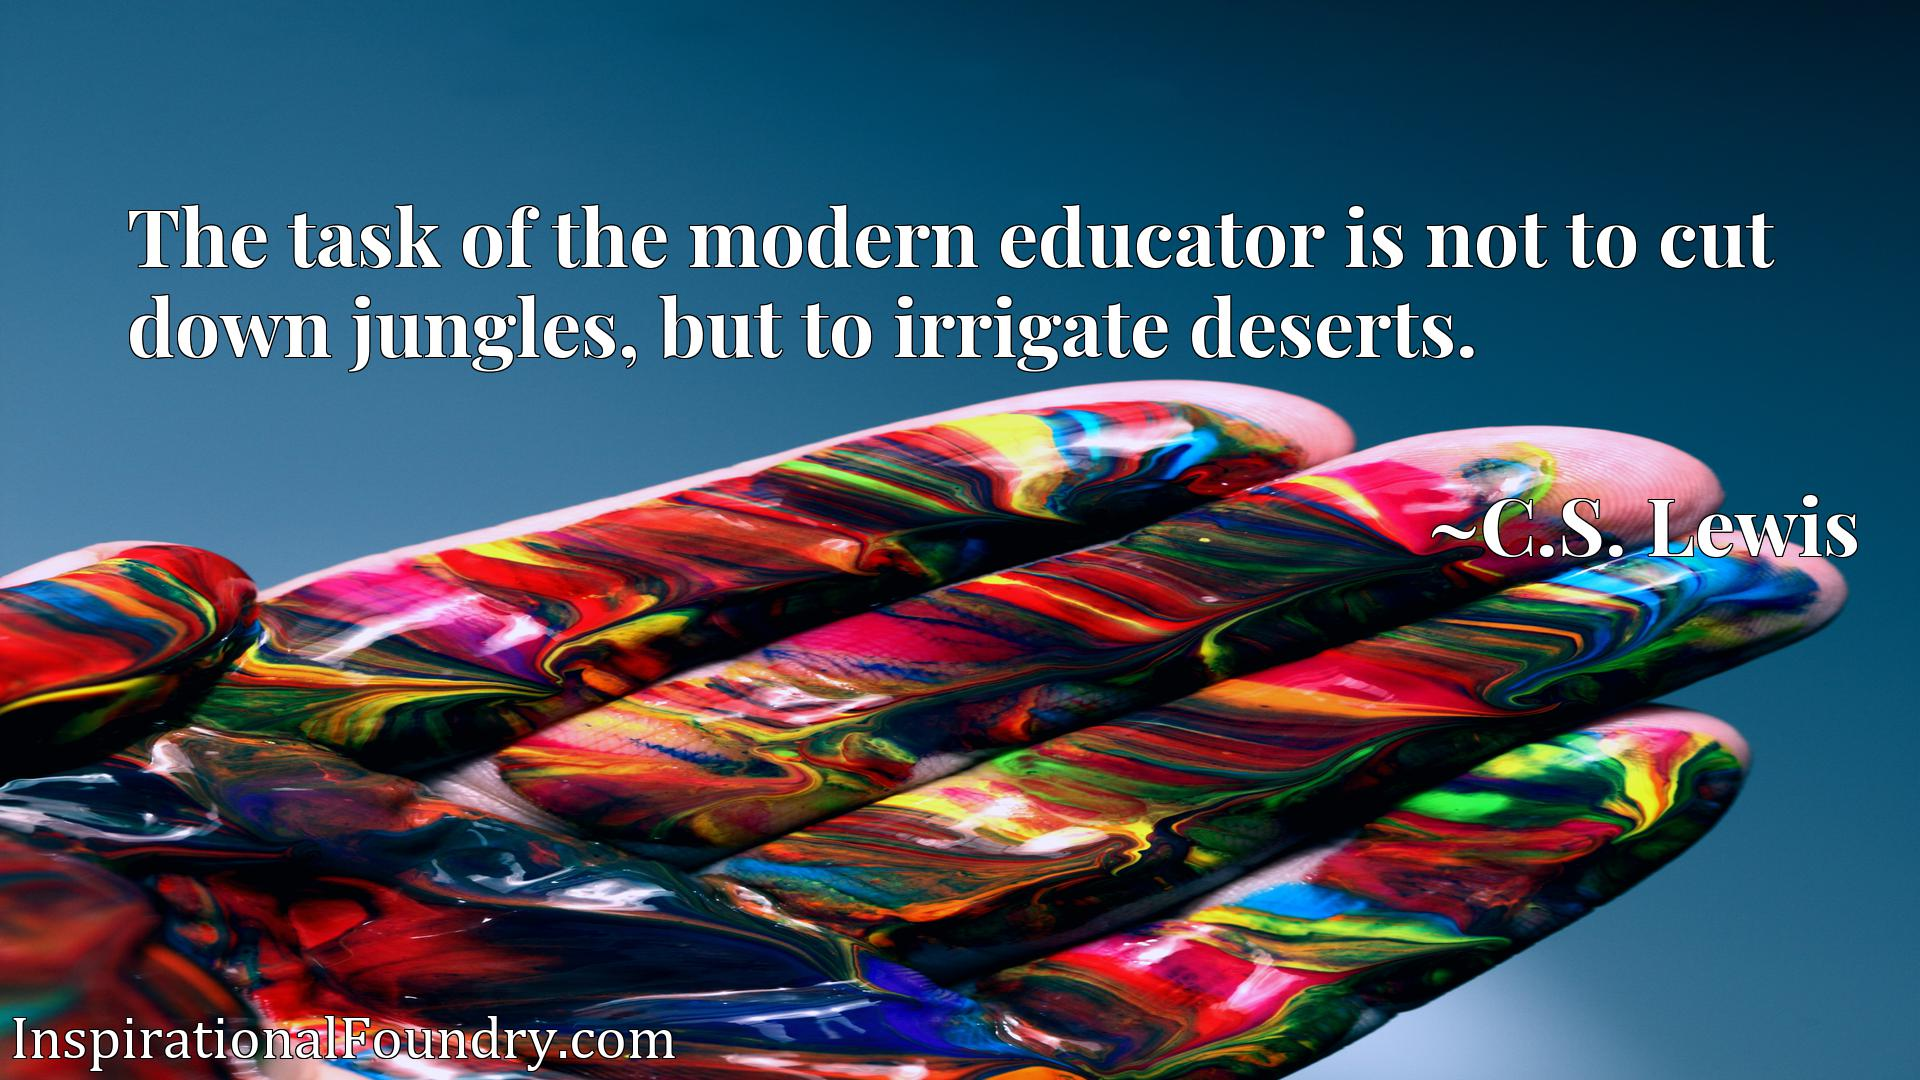 The task of the modern educator is not to cut down jungles, but to irrigate deserts.